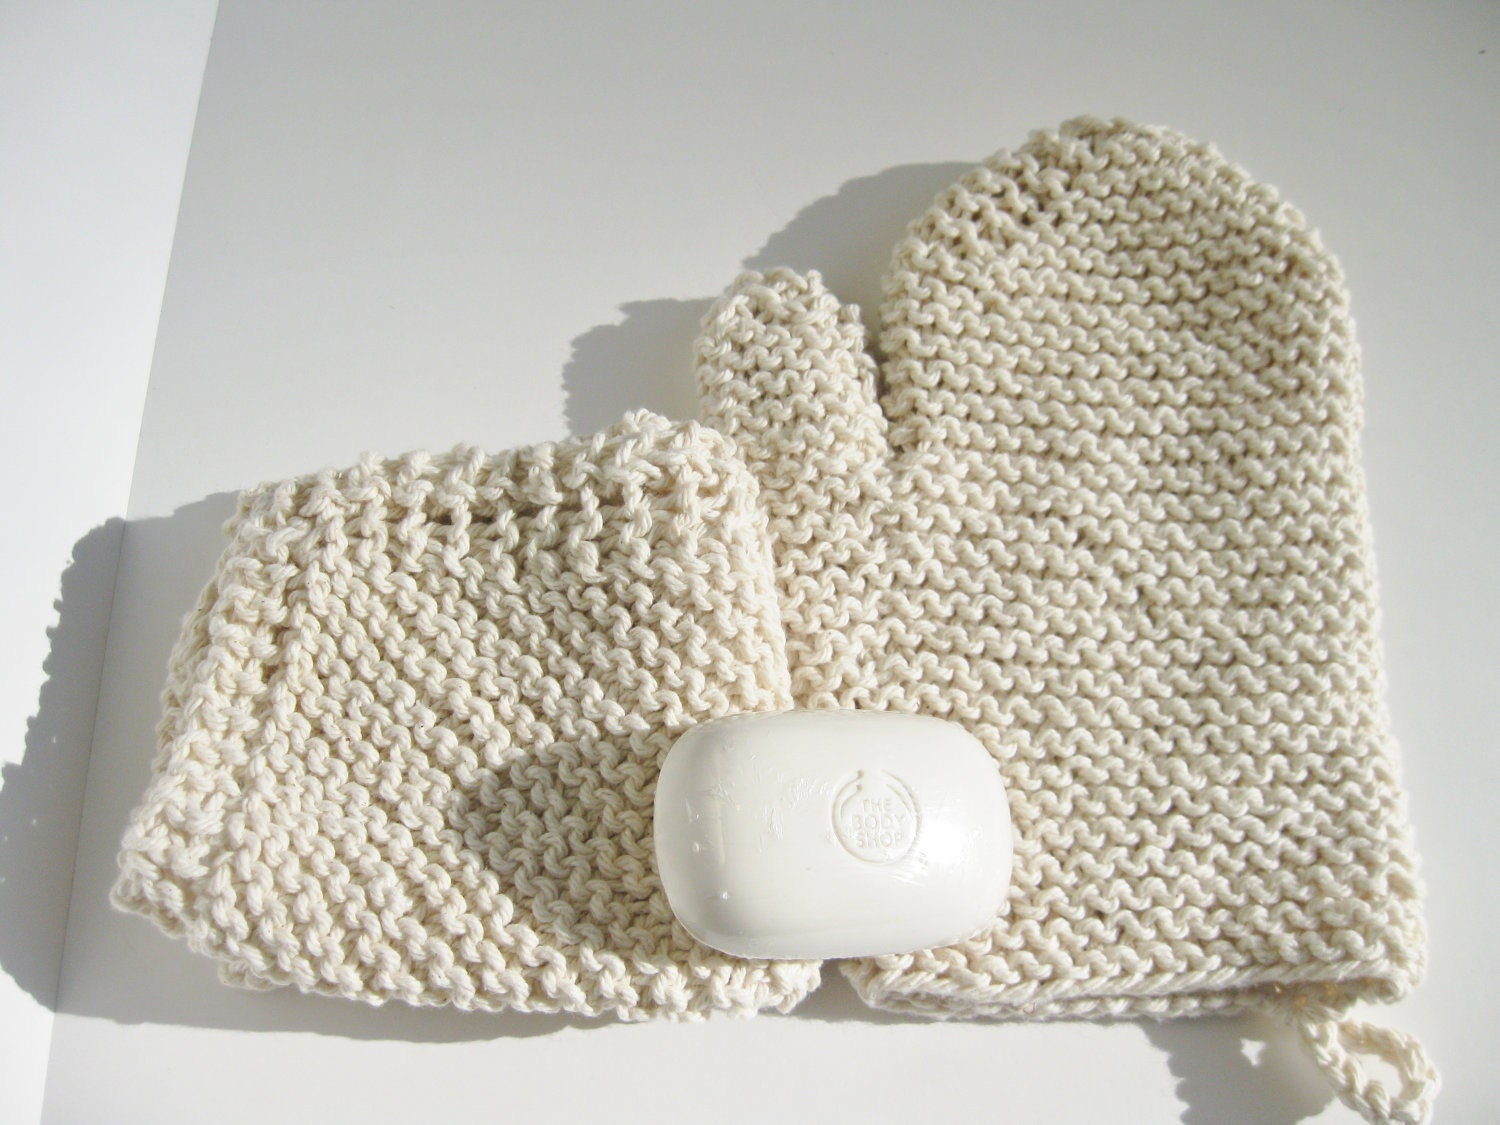 Cotton Spa Set - Mitt, Washcloth and Soap, Natural ecru